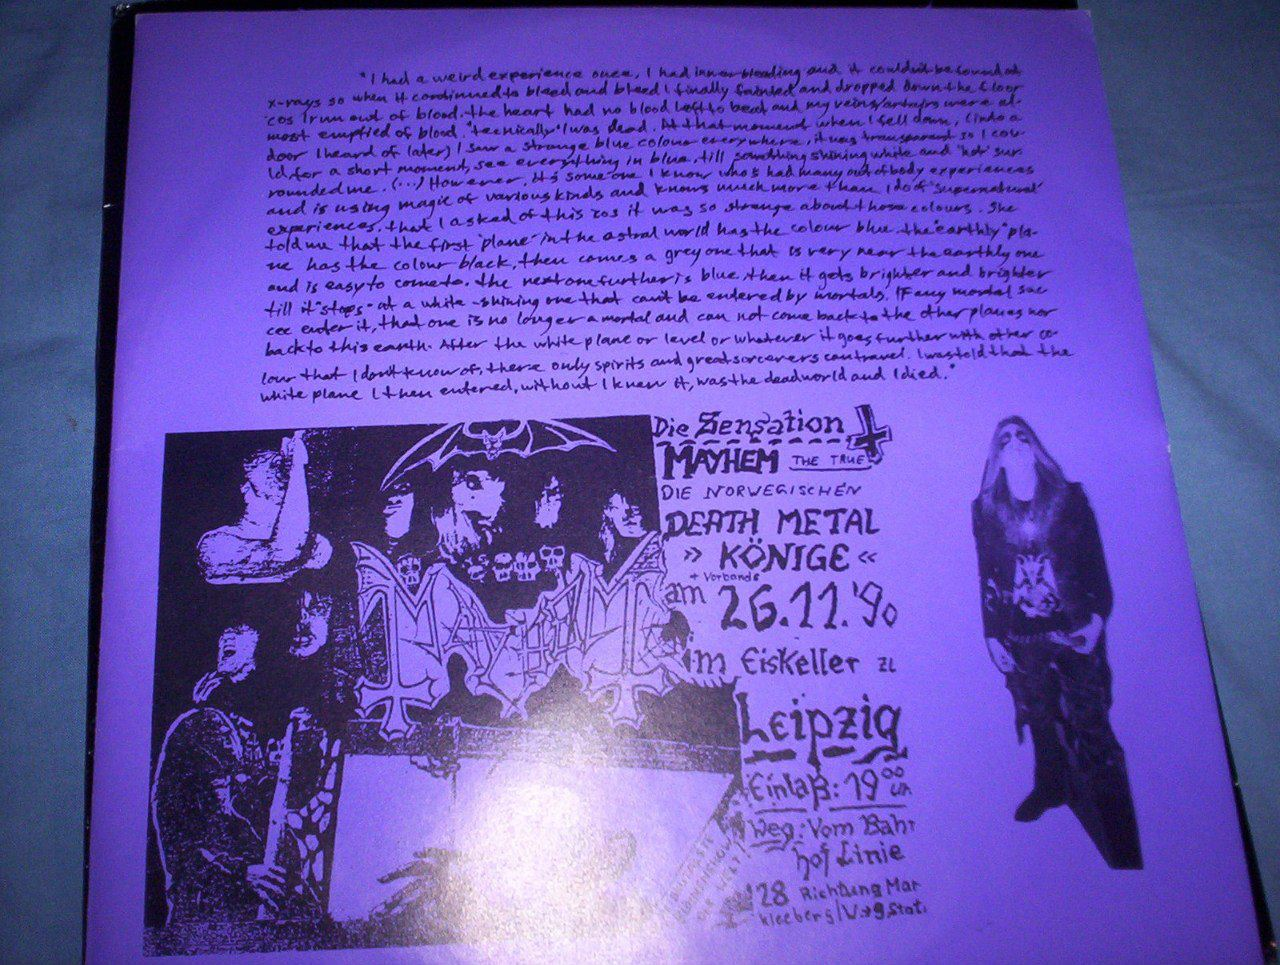 + Pelle Ohlin Letter about his Near Death Experience +